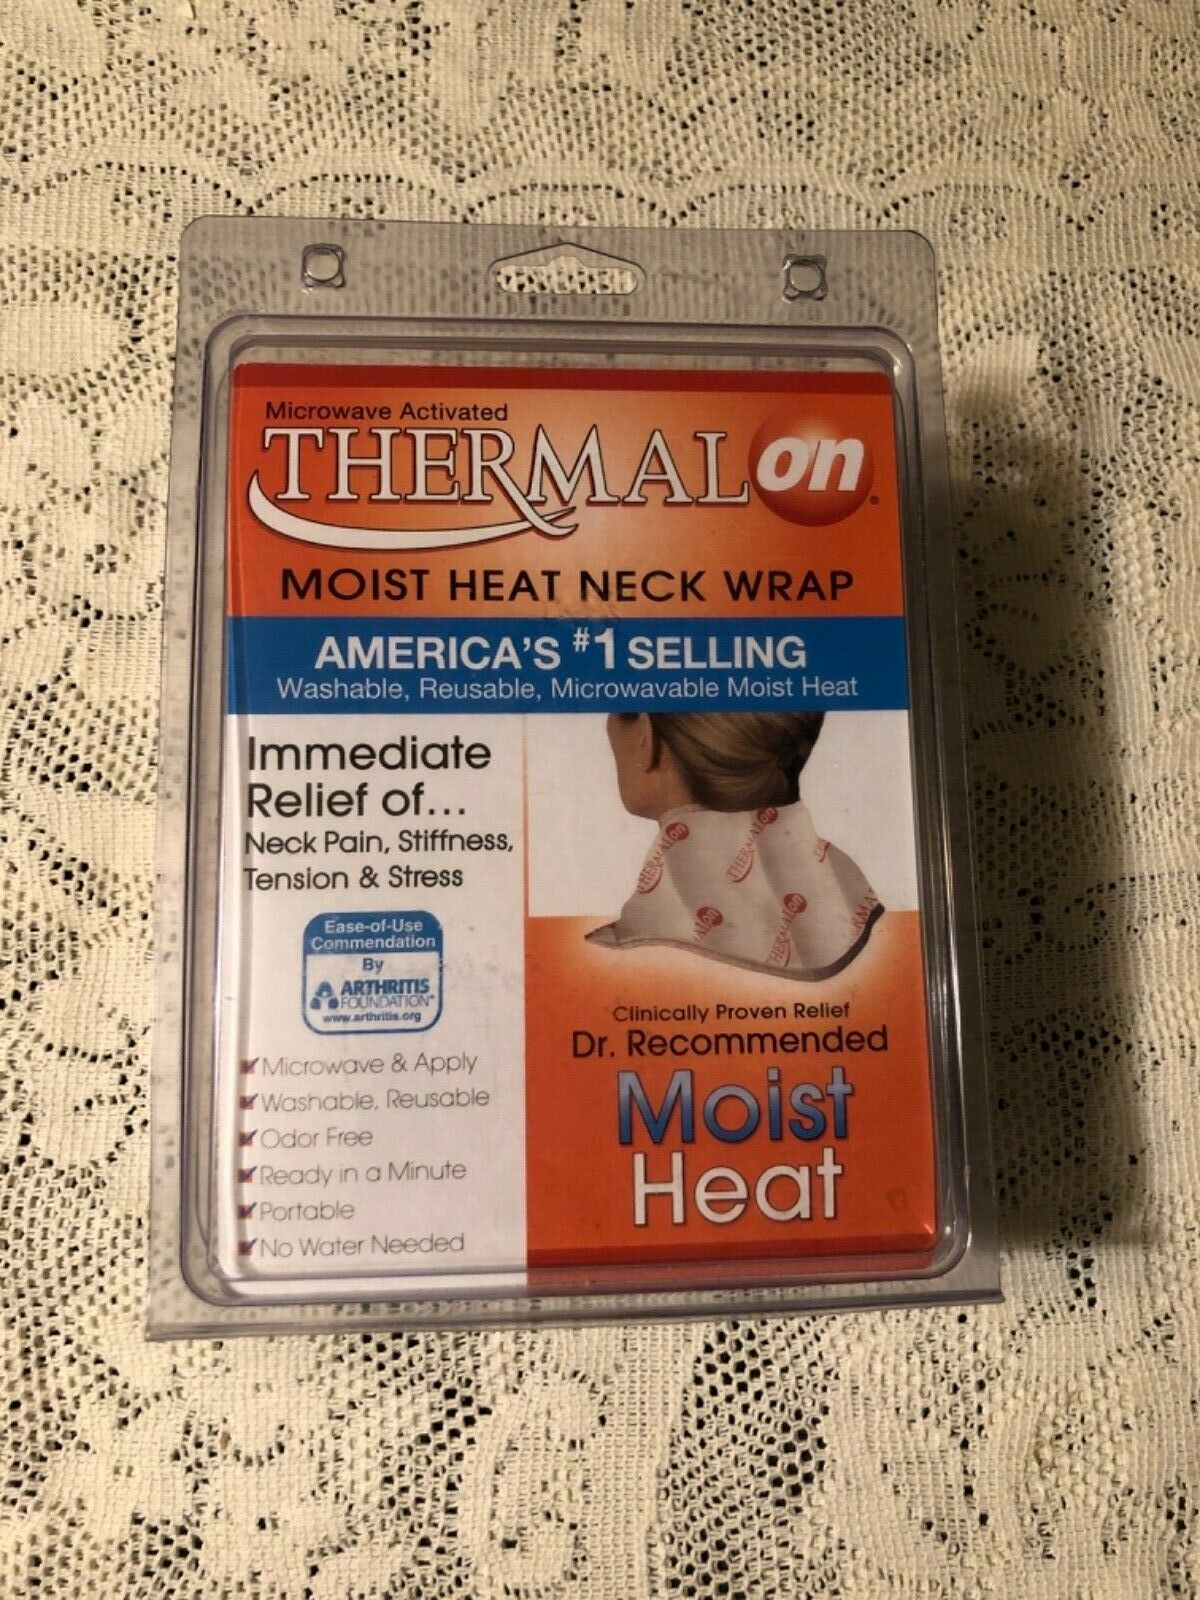 Thermalon Microwave Activated Moist Heat-Cold Neck Wrap for